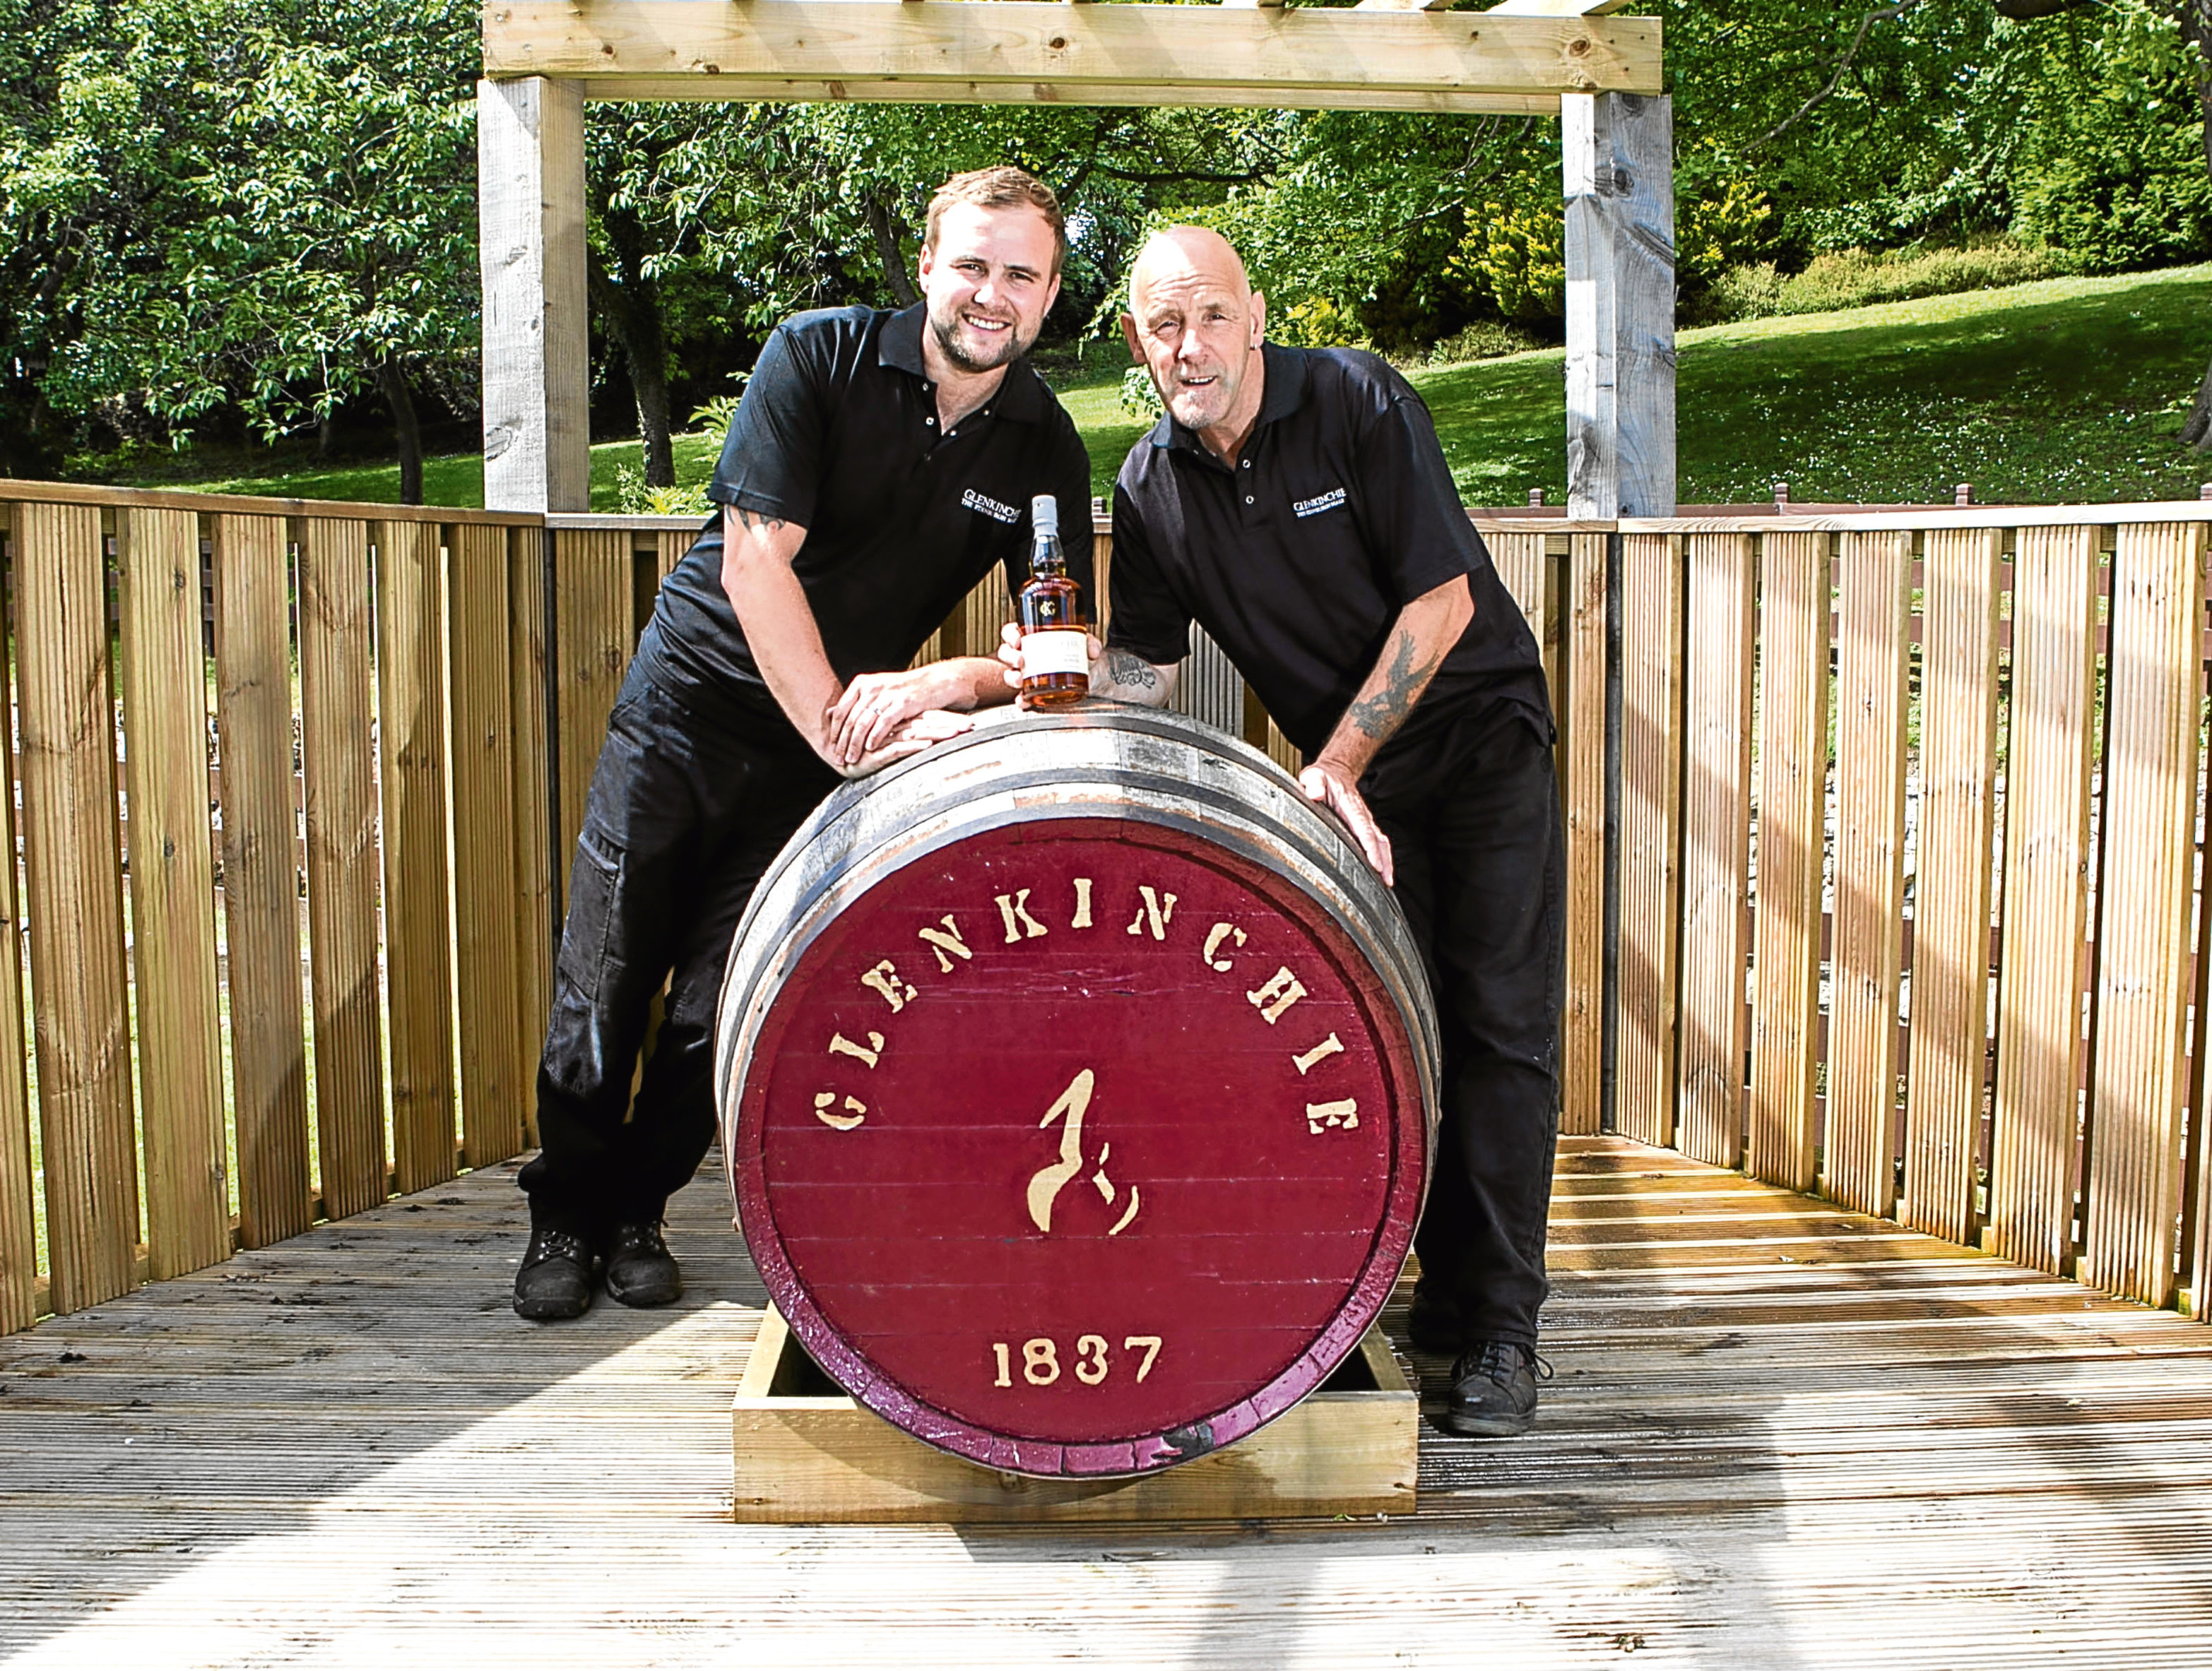 Shawn Christie and dad Adam are 3rd and 4th generation to work at Glenkinchie distillery (Sunday Post)